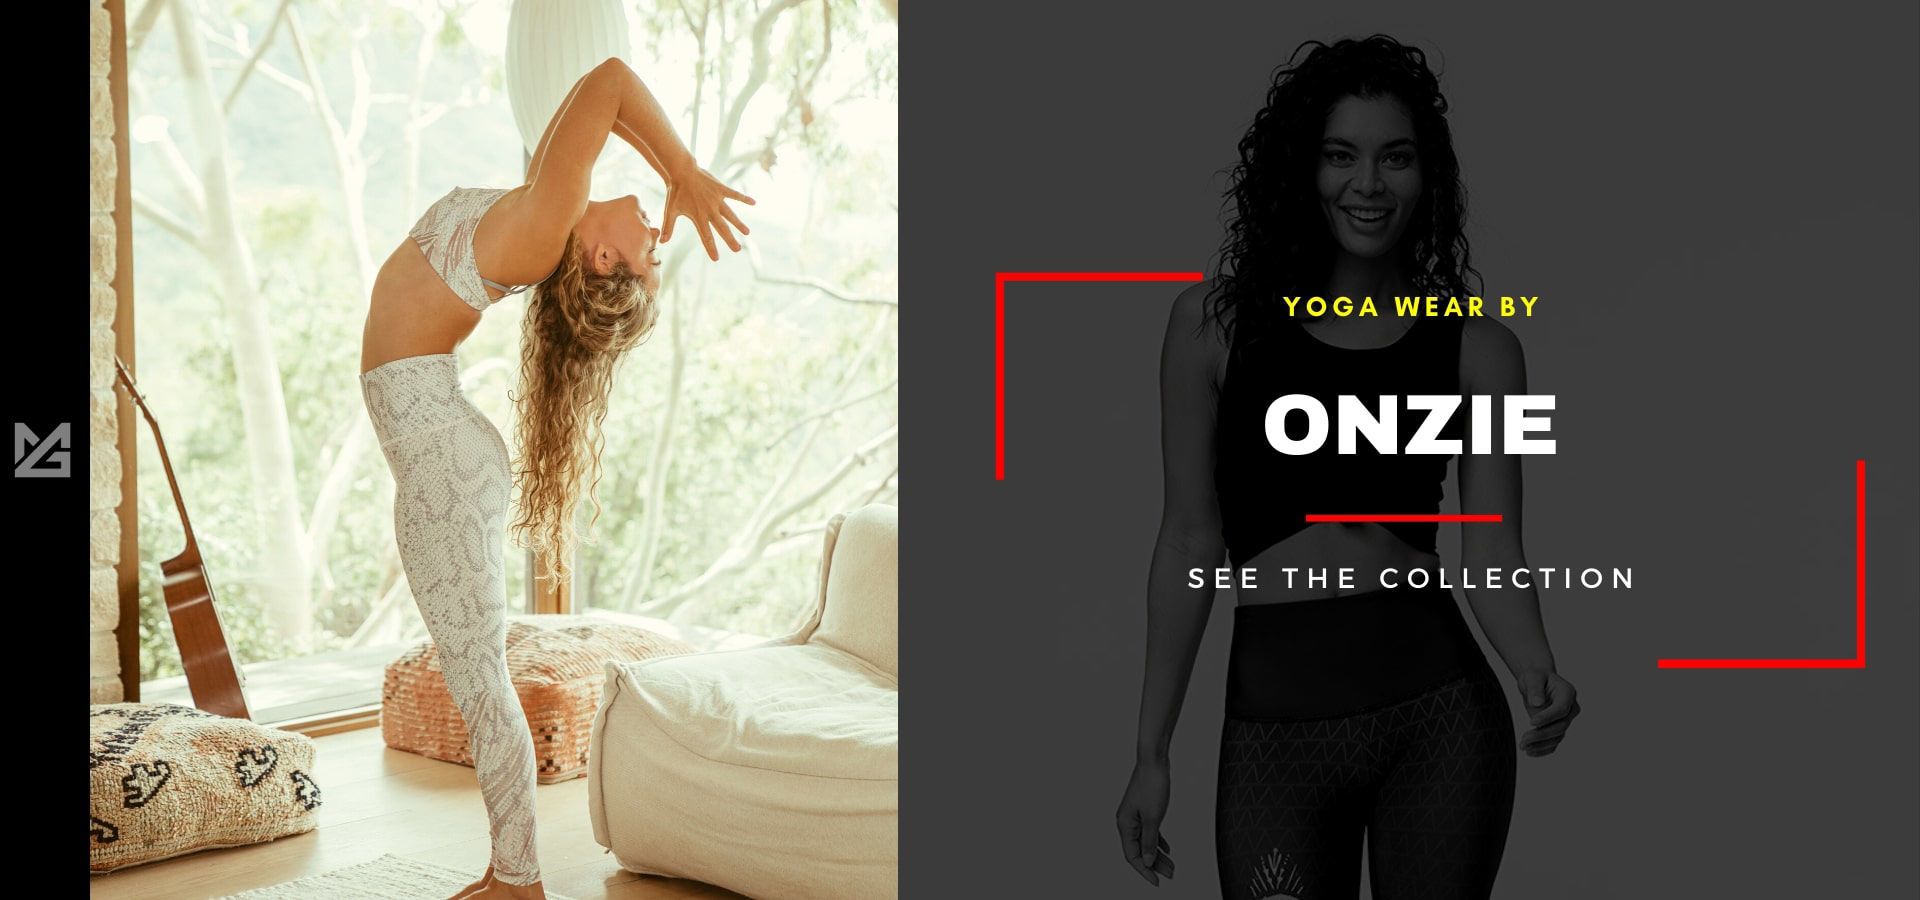 Shop comfortable yoga wear by Onzie